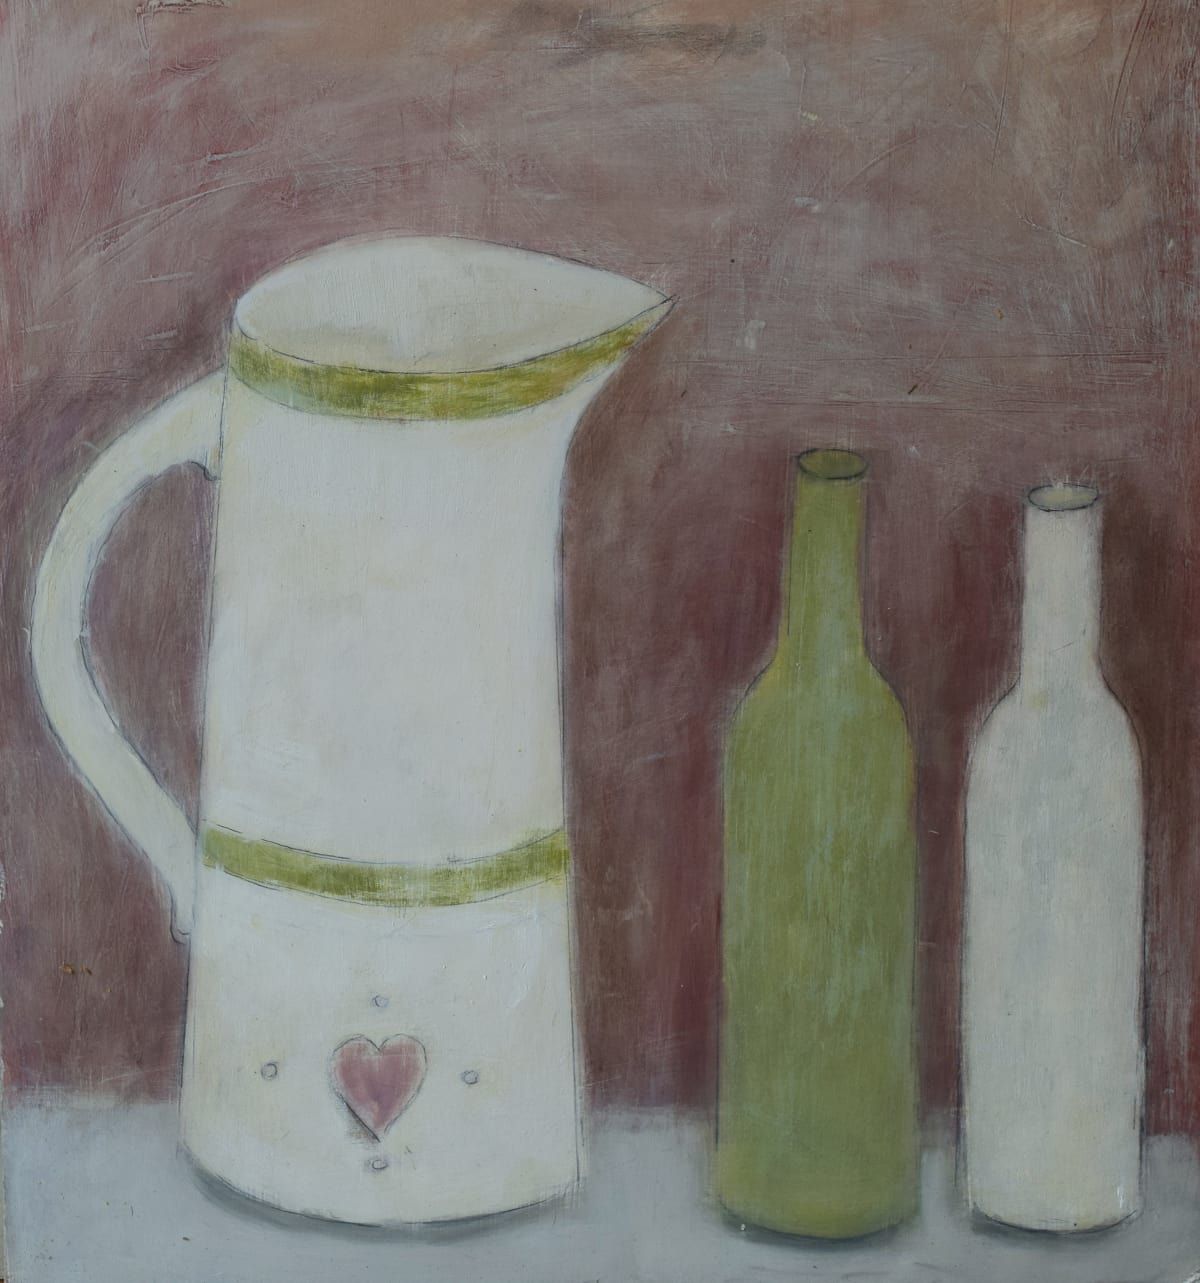 Joyce Gunn Cairns MBE, A Jug and Two Bottles